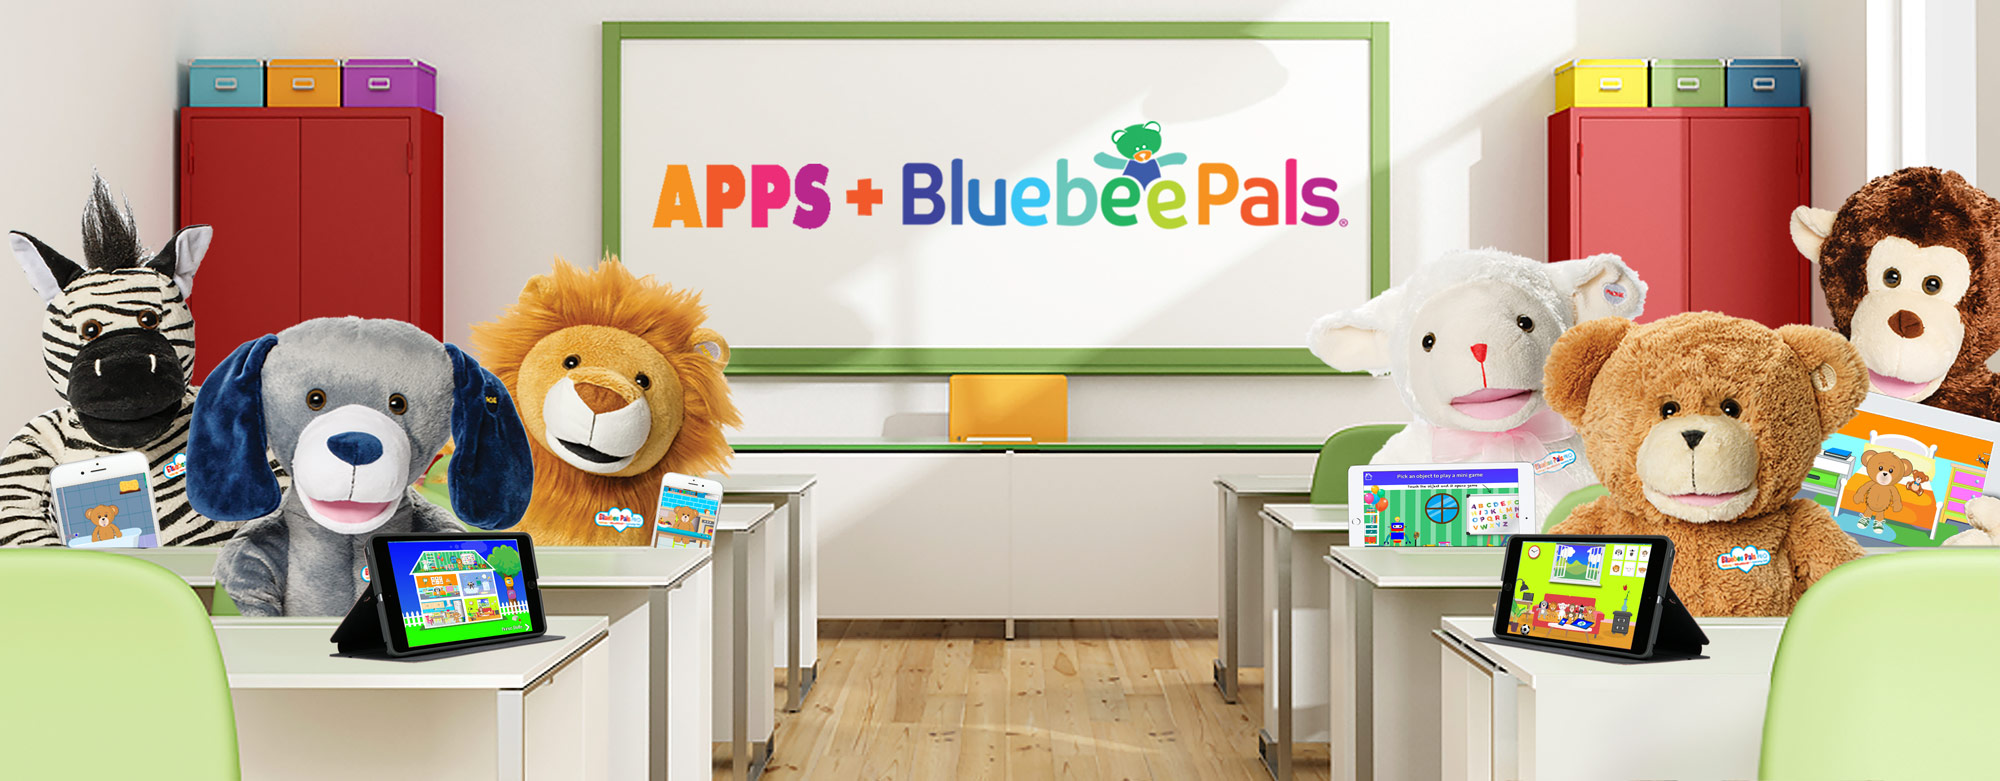 Apps with Bluebee Pals